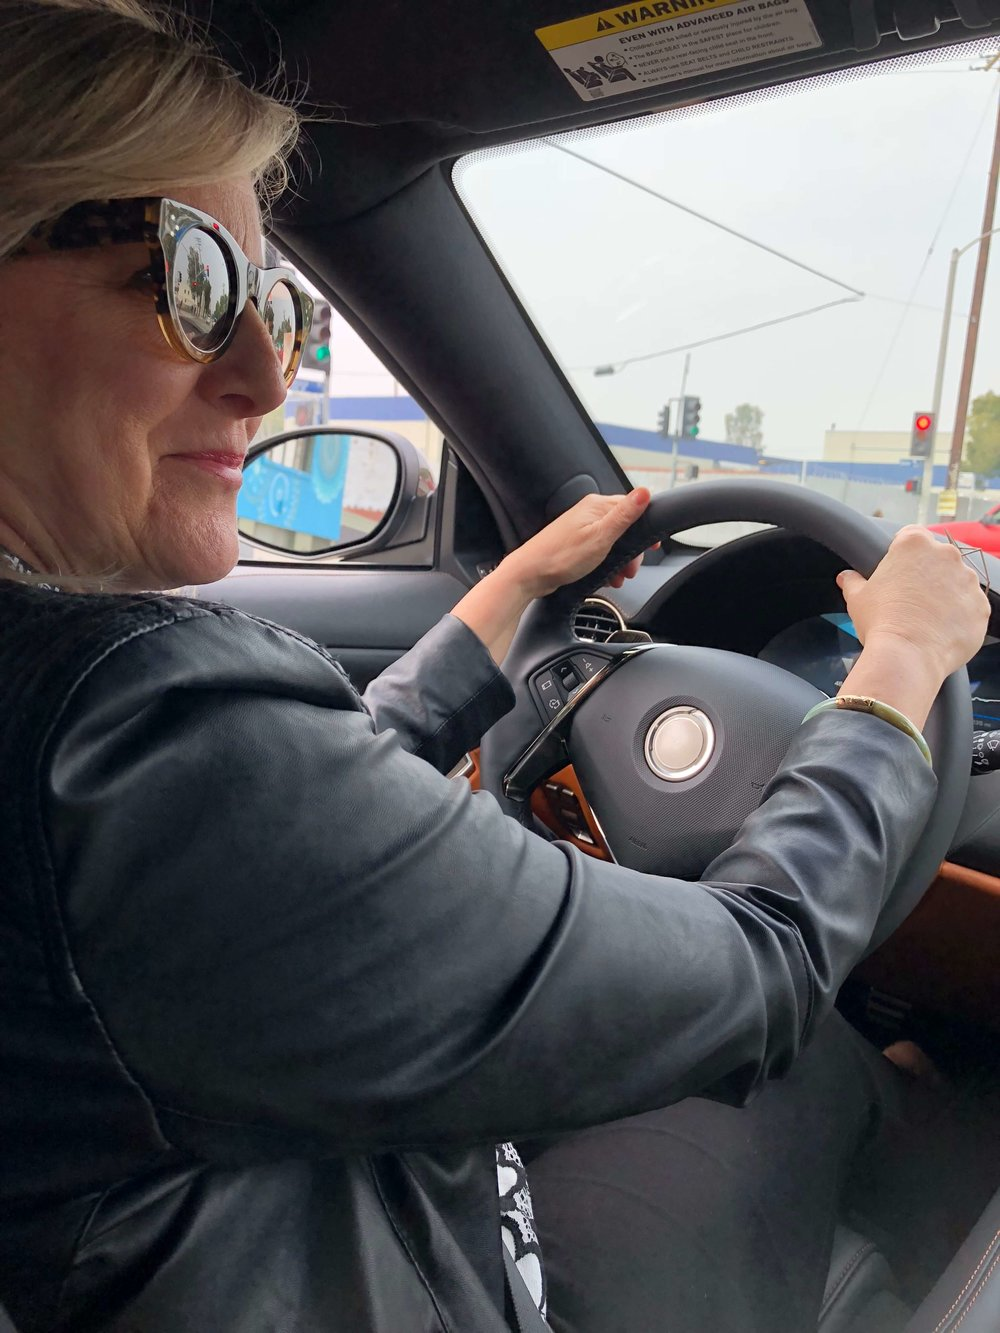 Deborah von Donop  drove our car and looked so good! Karma Automotive  #luxurycar #karmaautomotive